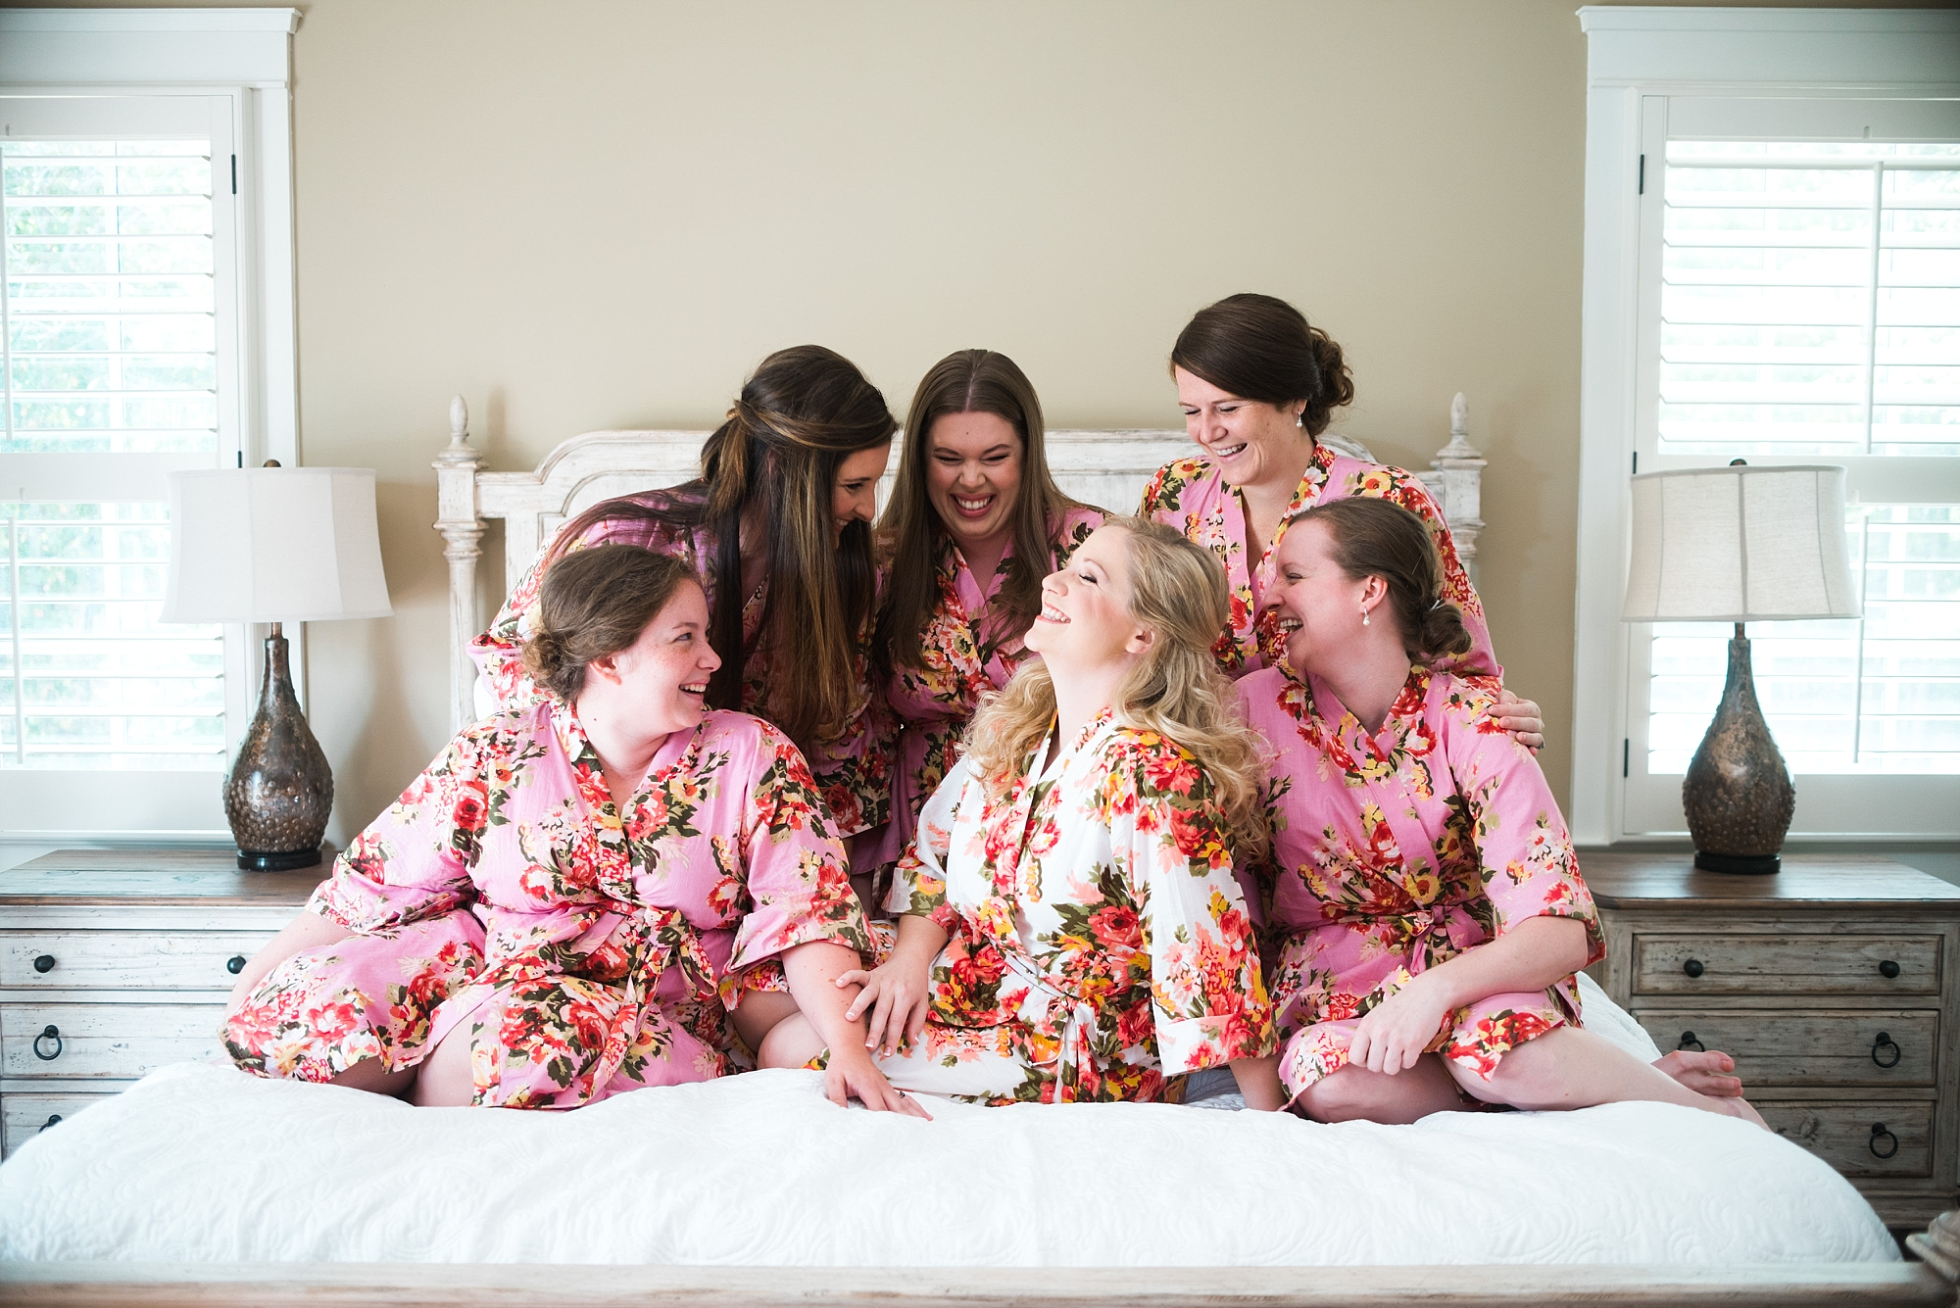 Bride with Bridesmaids in Robes| Kyle & Erin | Scarbrough Wedding | Children's Harbor | Laura Wilkerson Photography